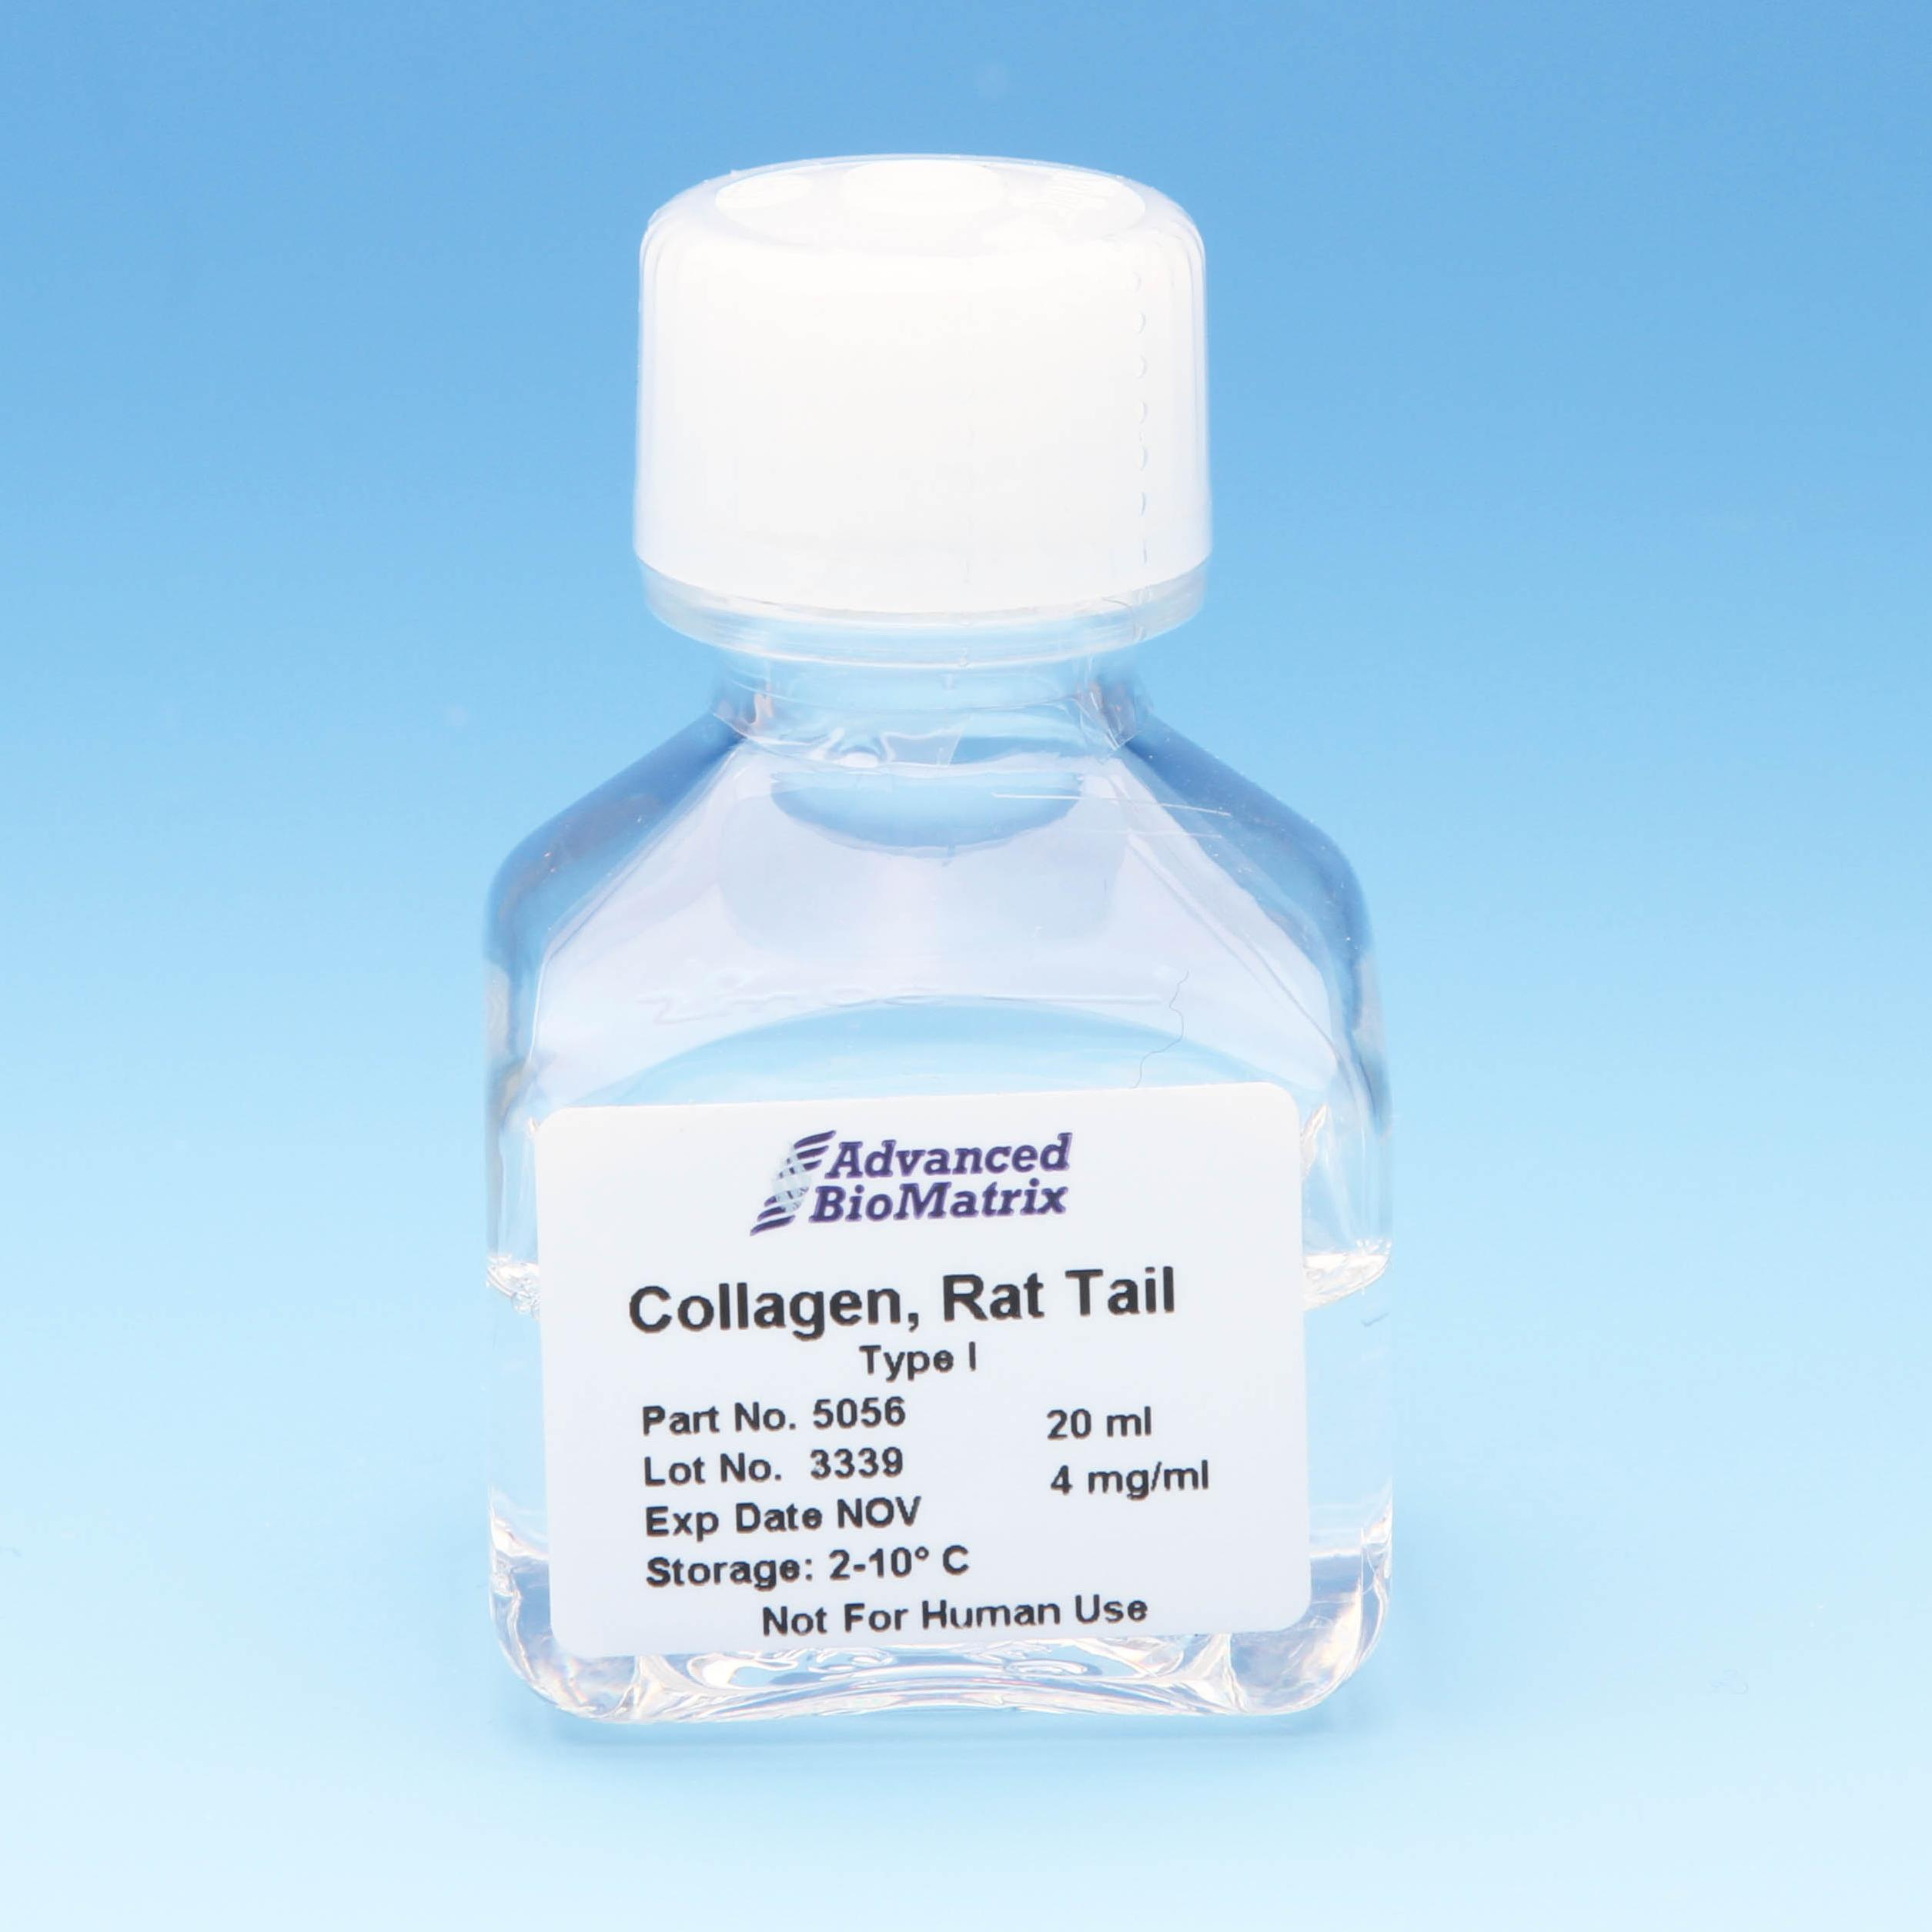 RatCol type I rat tail collagen from advanced biomatrix